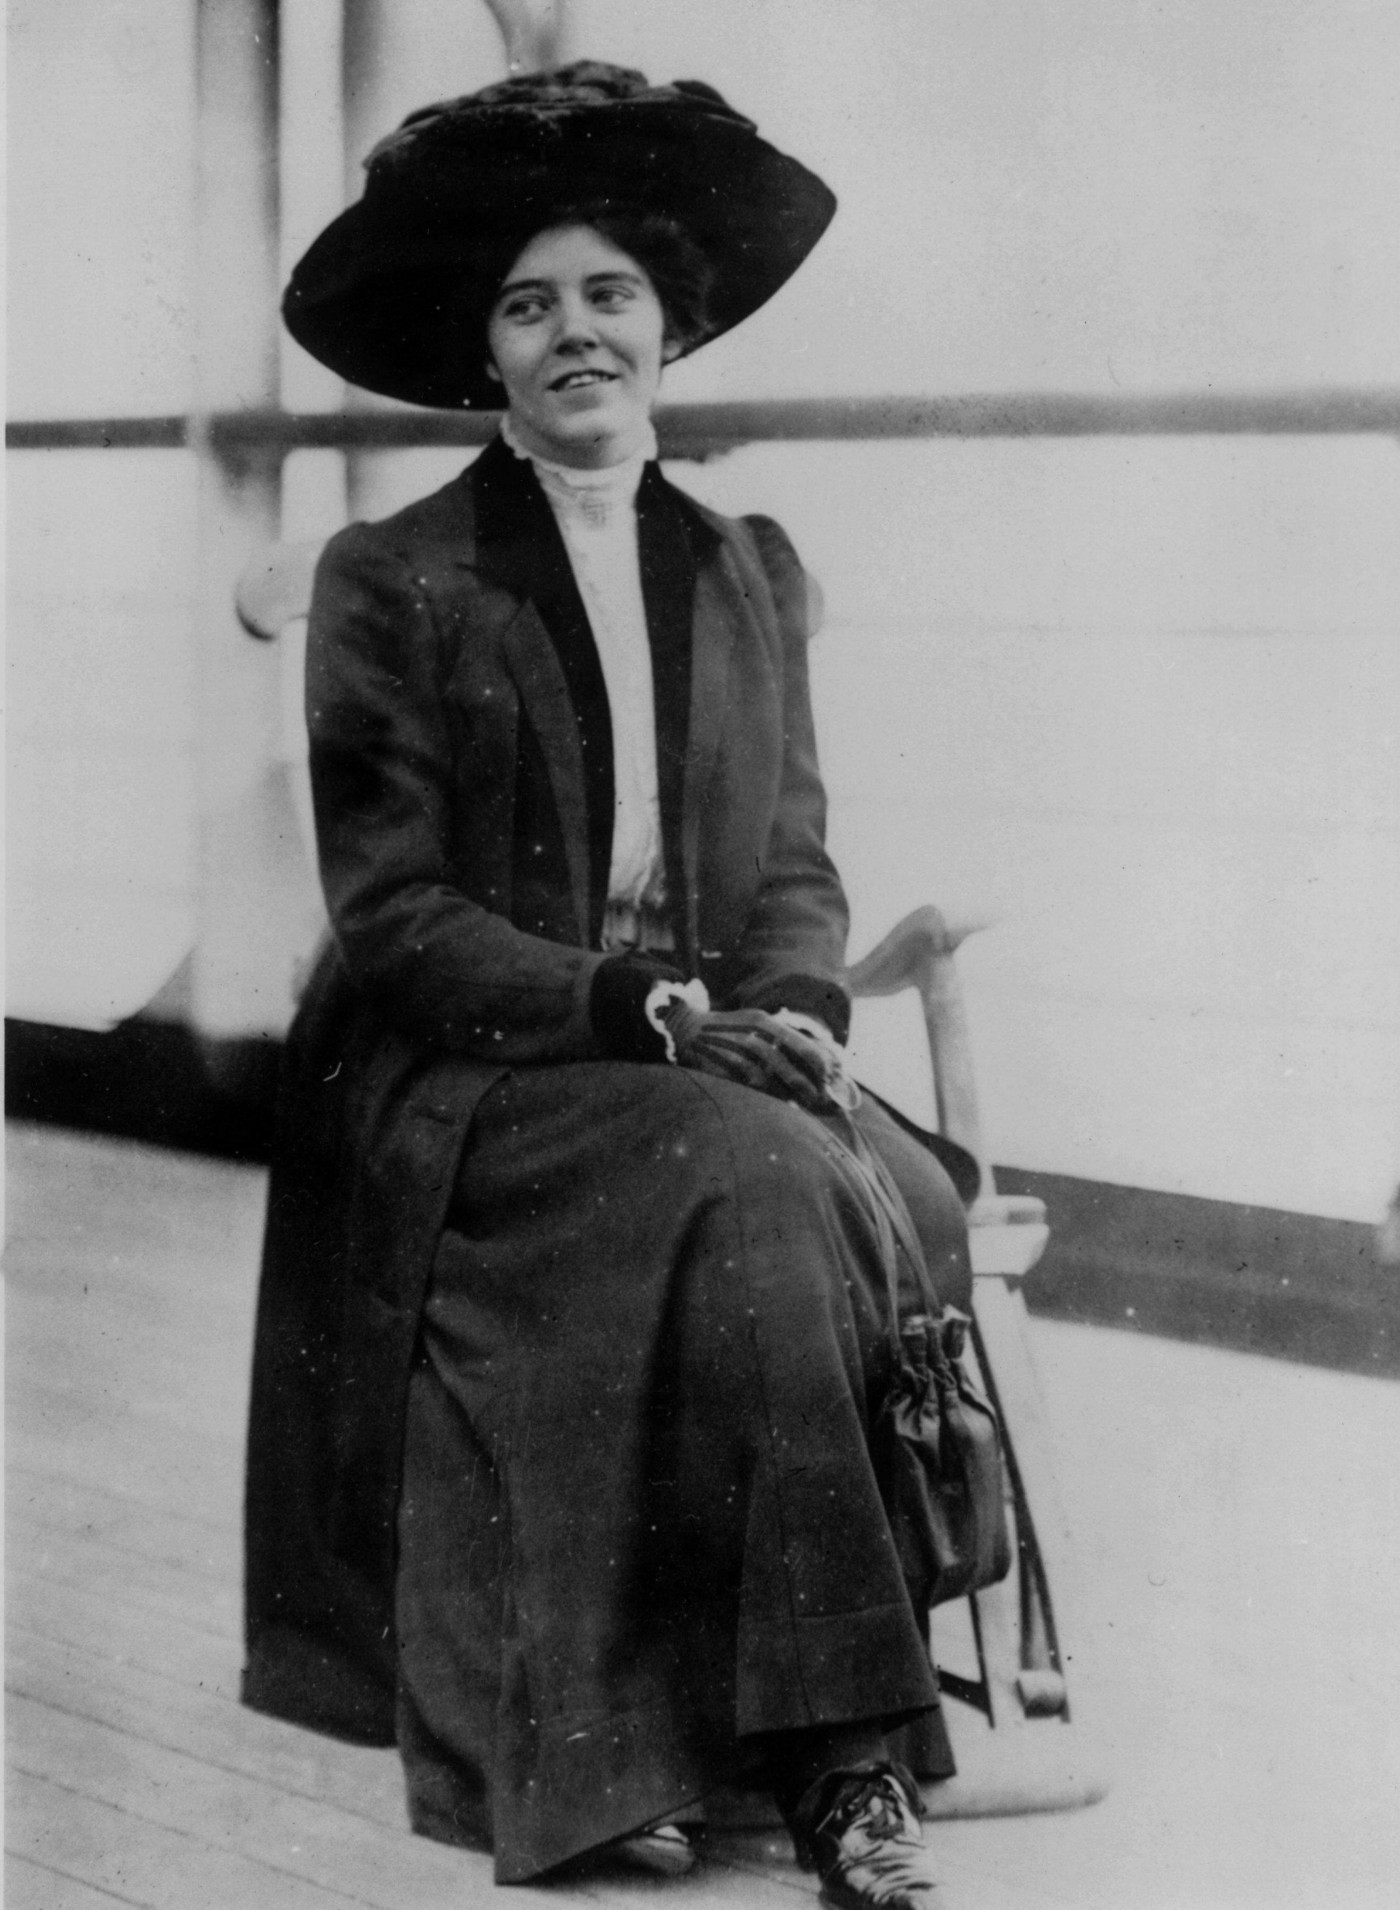 American suffragist Alice Paul on the deck of a steamer, January 1910